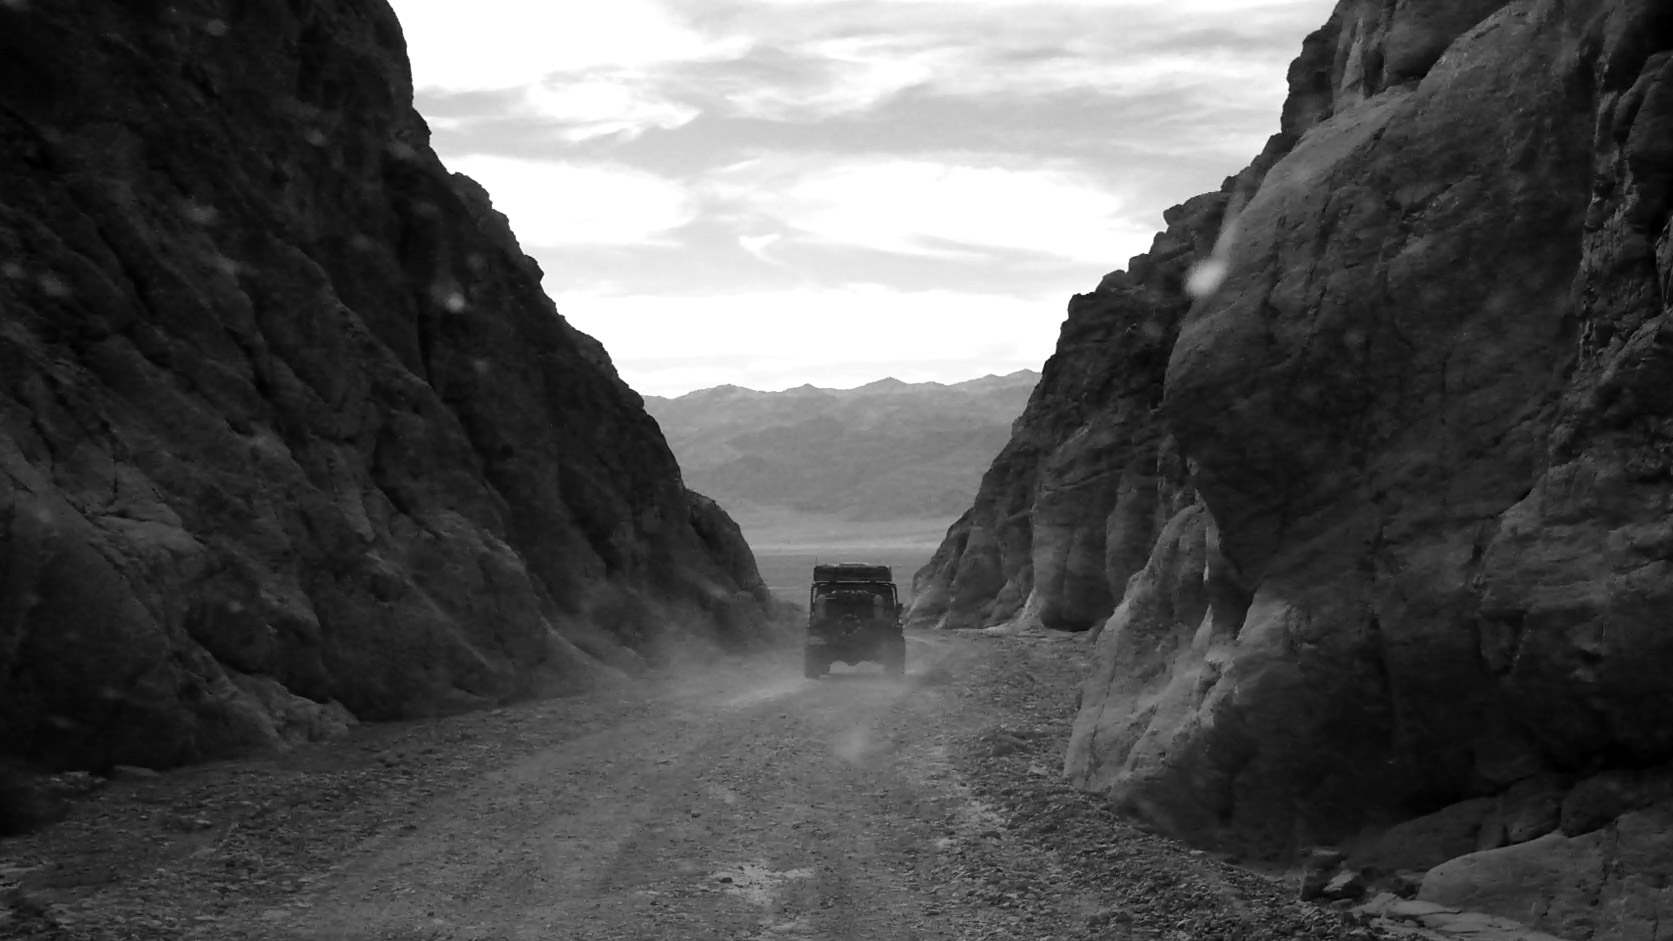 Off-roading in Death Valley.